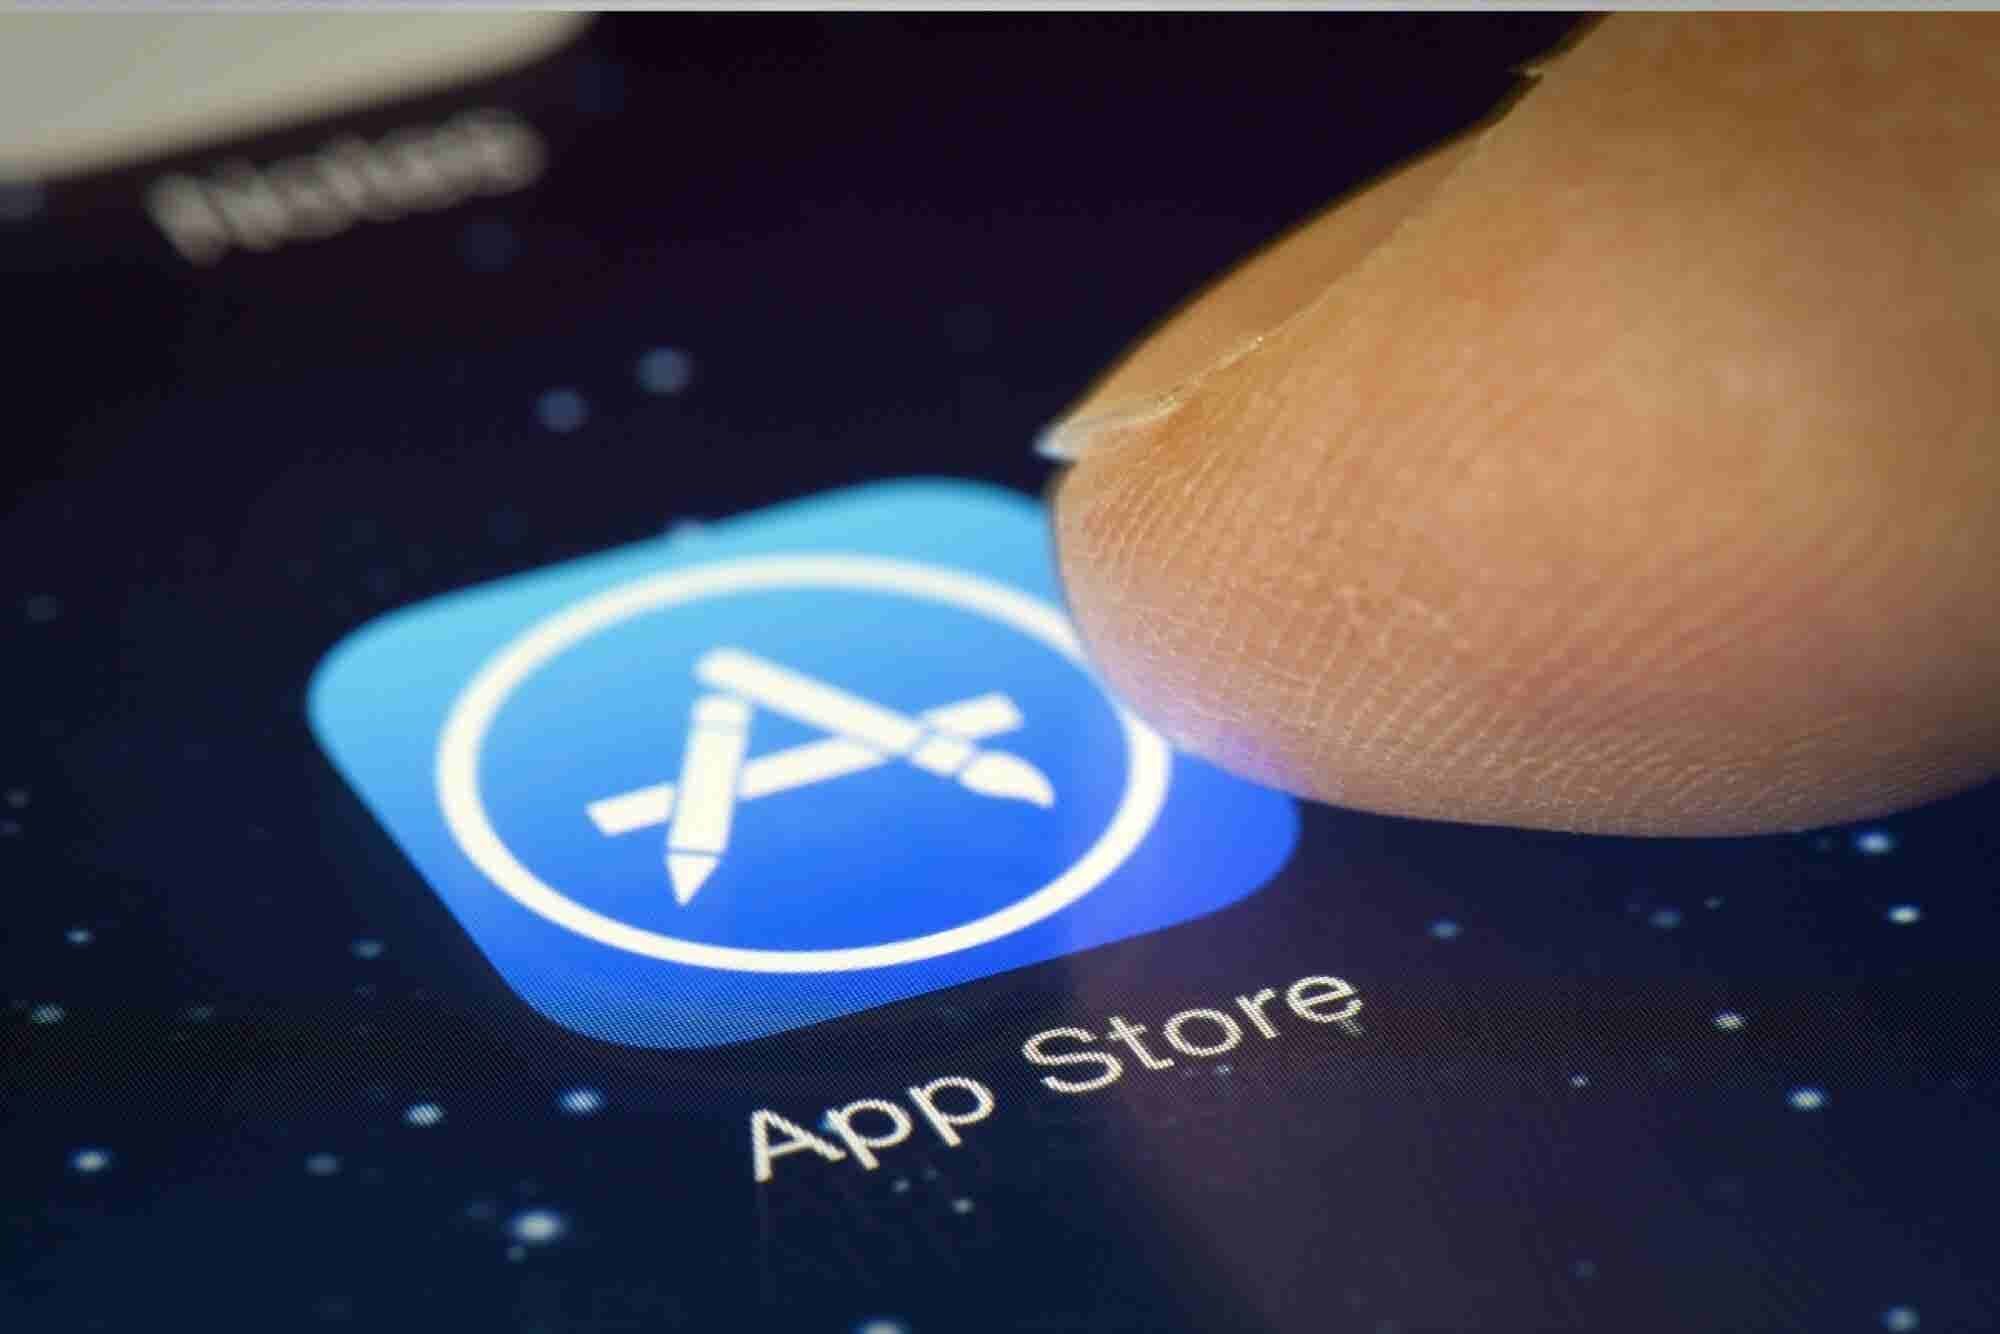 How This Unlikely App Made It to the Top of the App Store Rankings